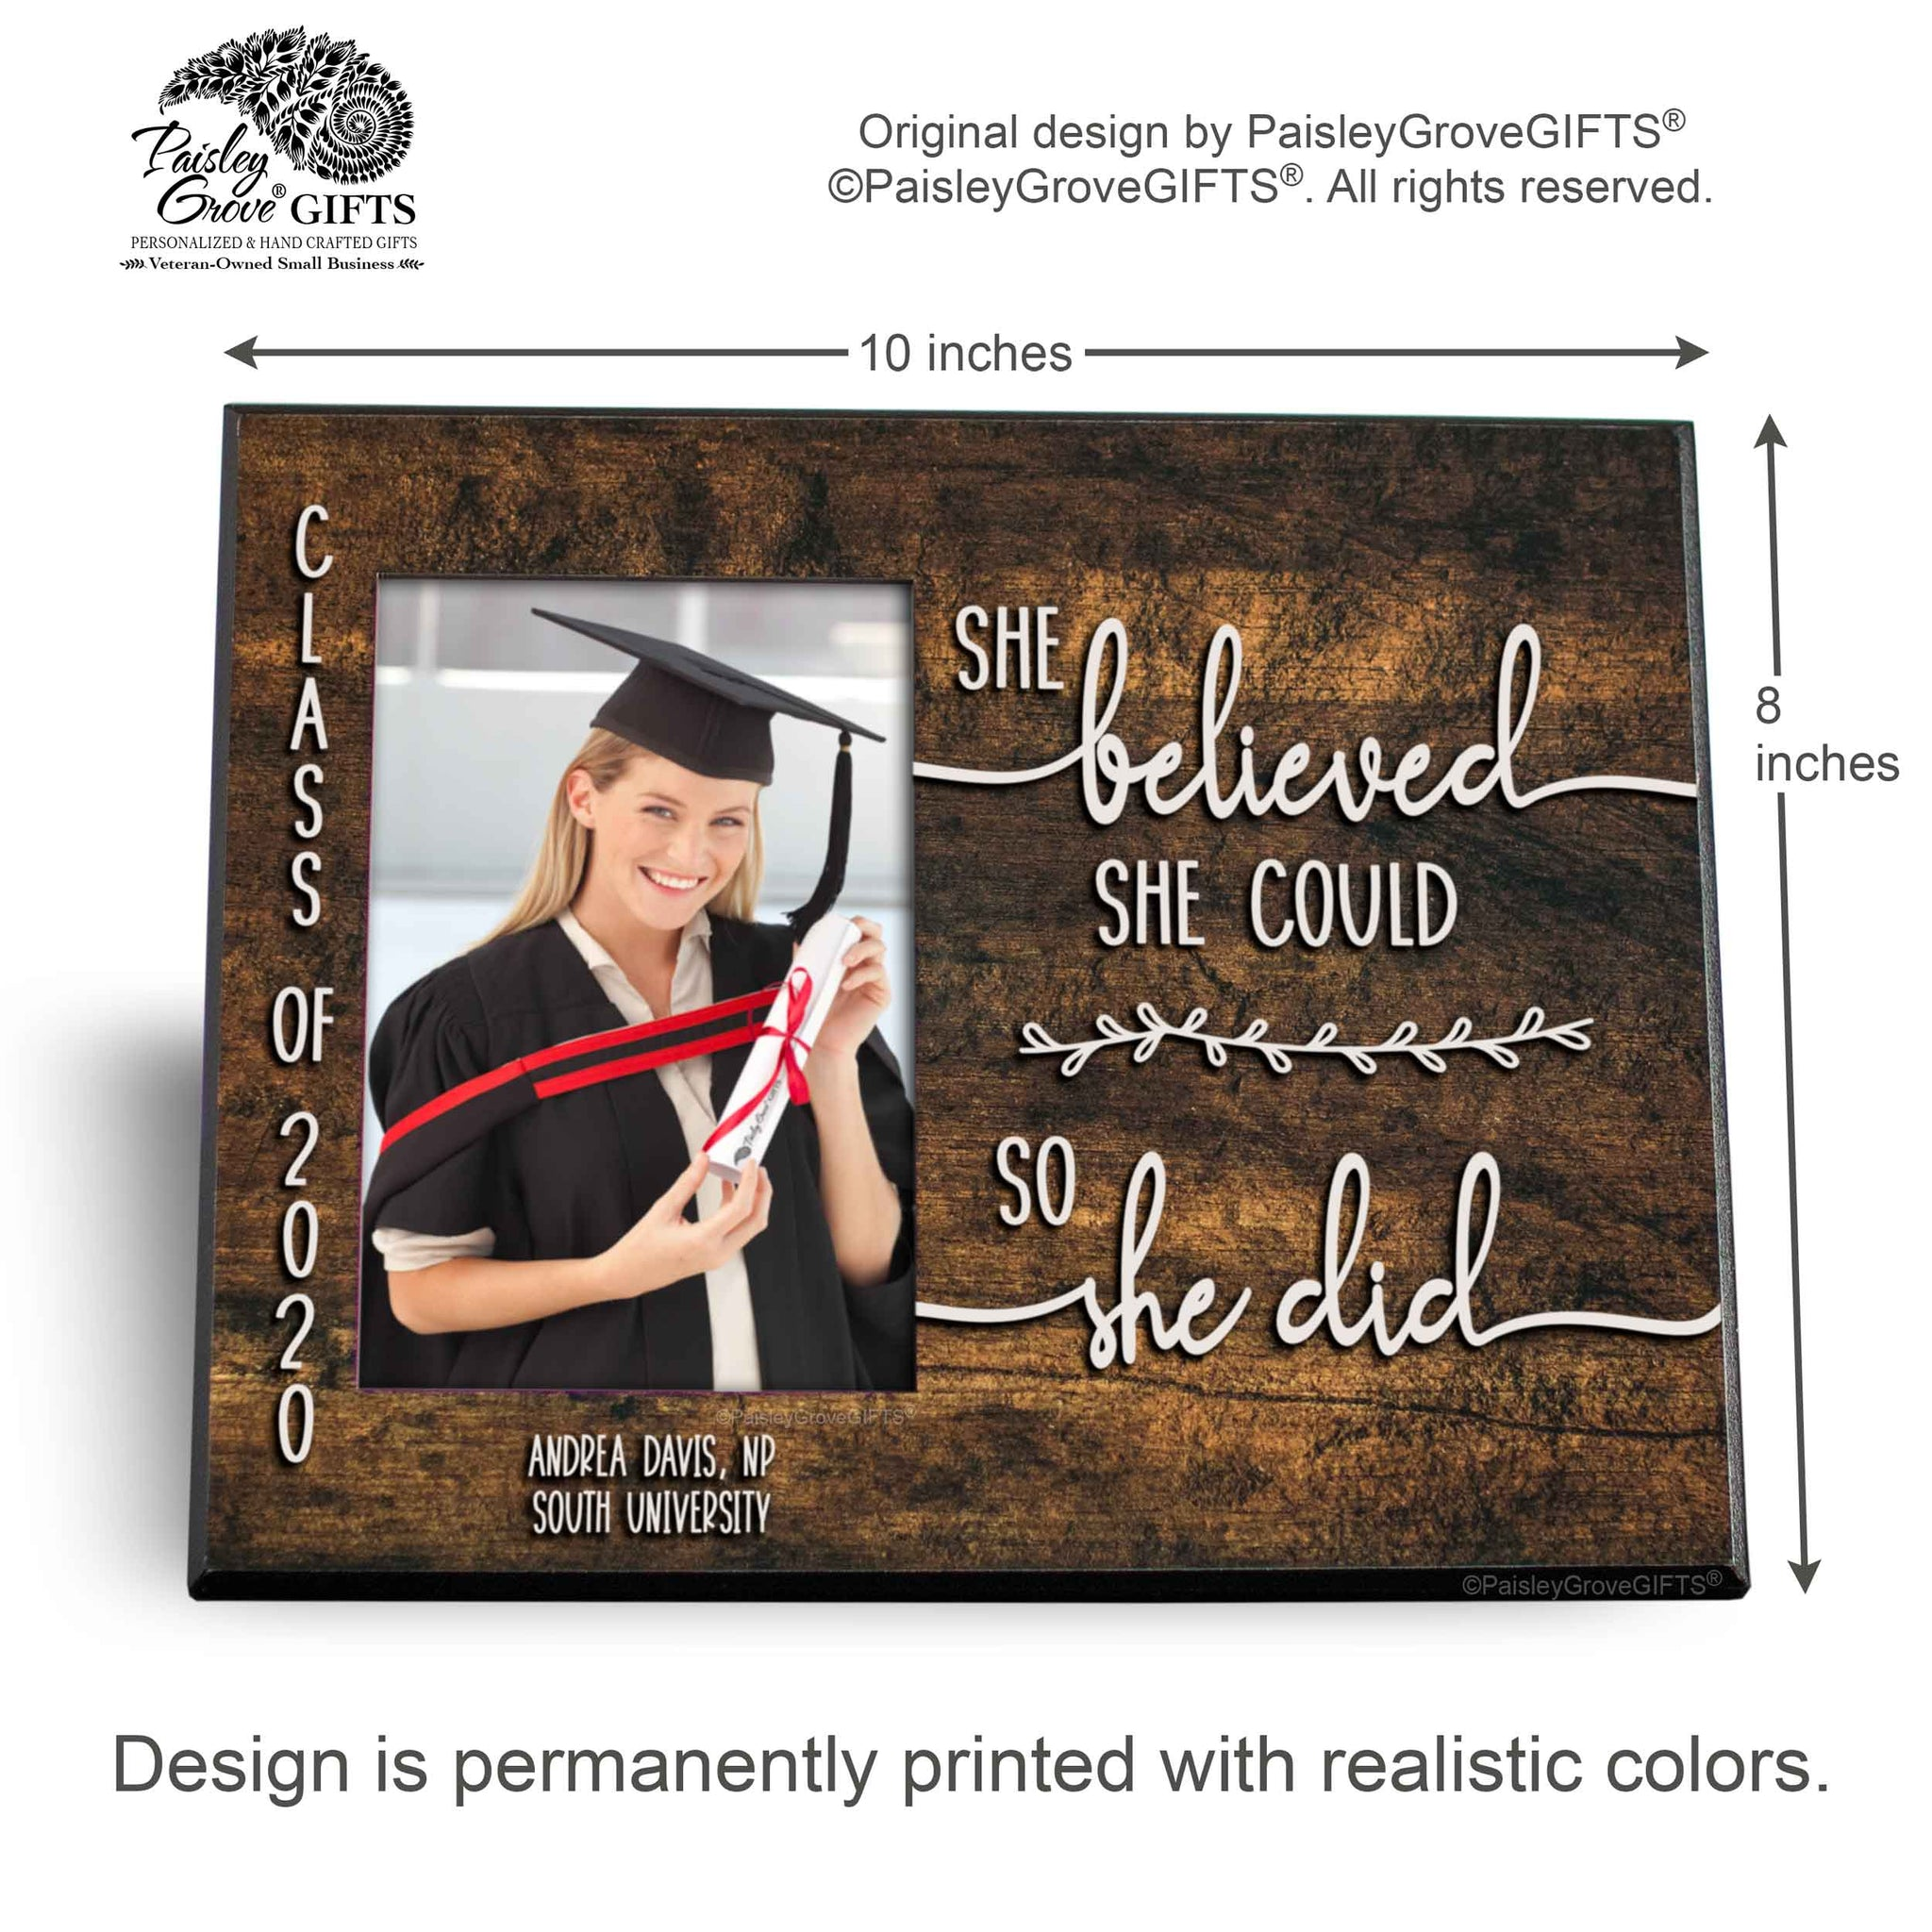 CopyrightPaisleyGroveGIFTS S226f2 Measurements for Sentimental Graduation Keepsake Graduate Picture Frame Customized